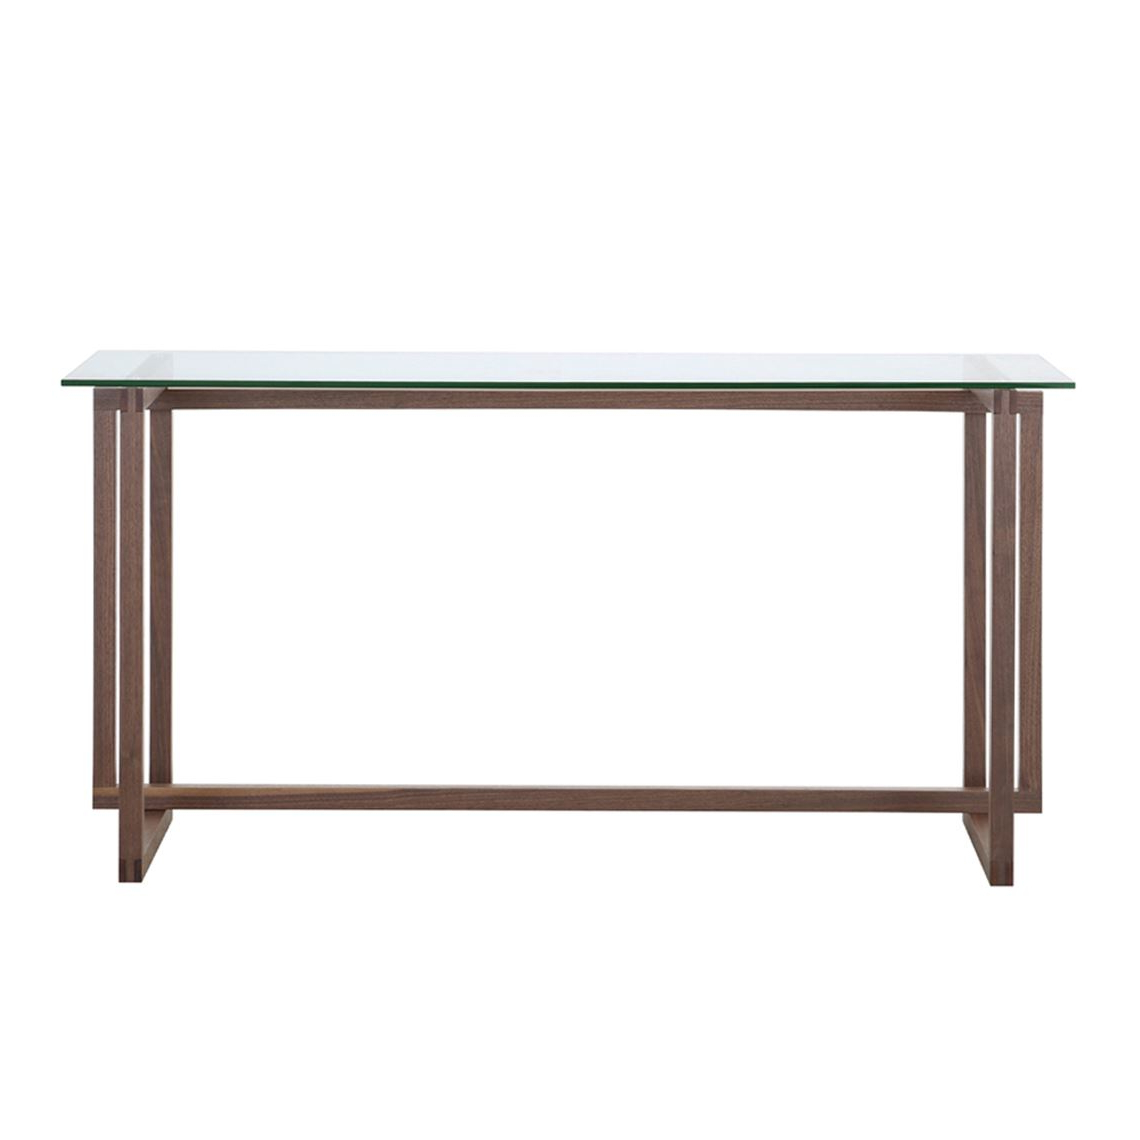 Kyra Console Table | Freedom Regarding Kyra Console Tables (Gallery 1 of 20)